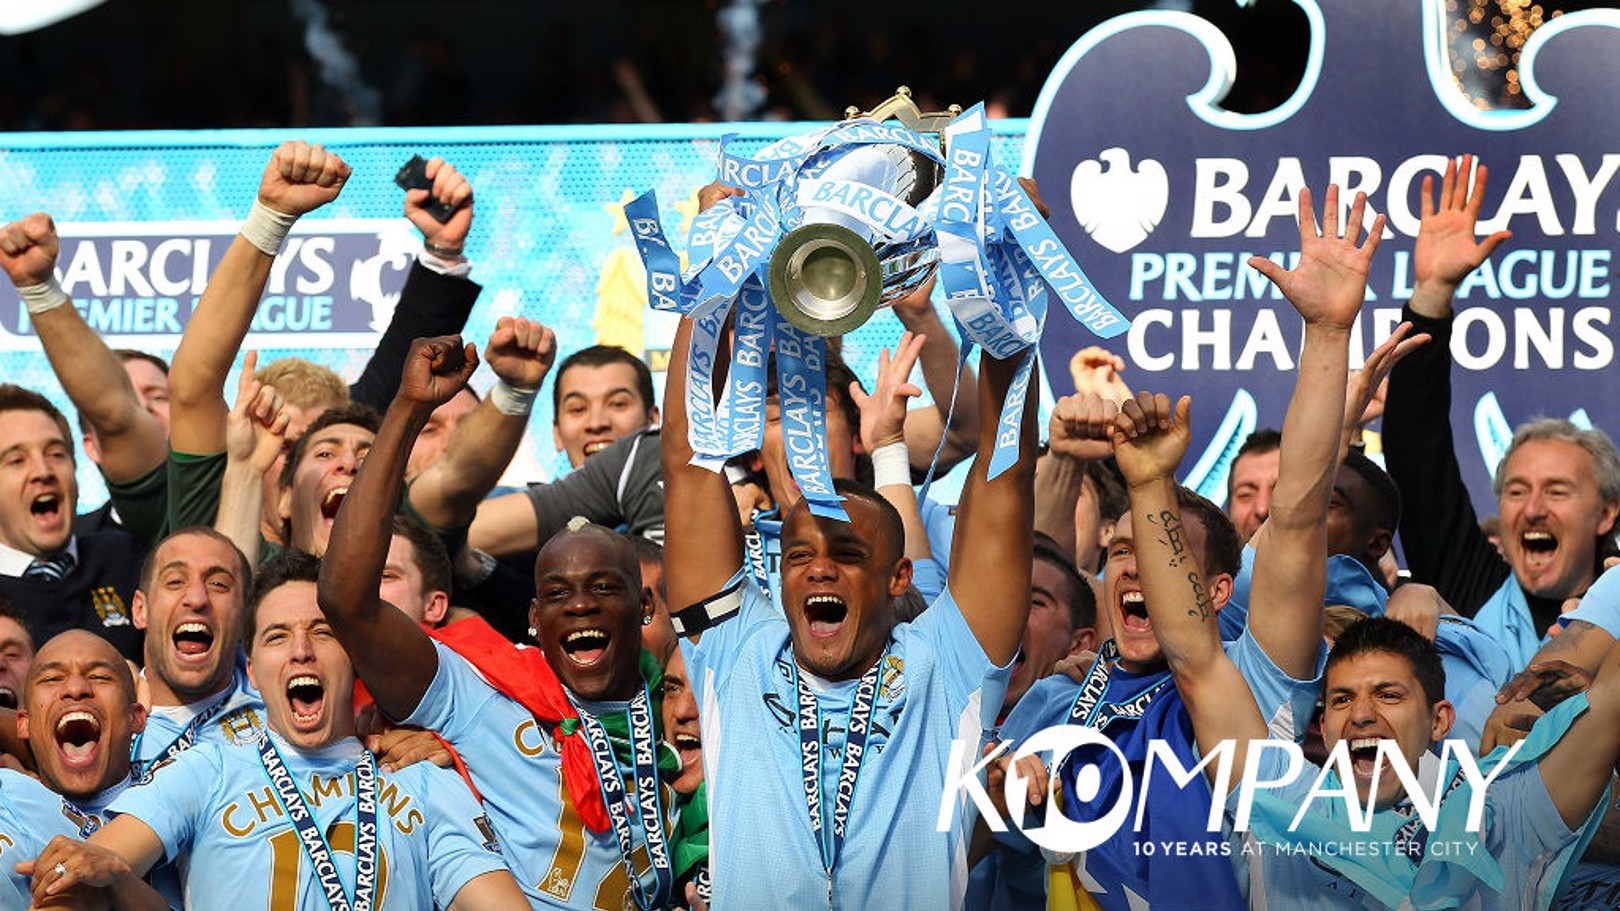 Vincent Kompany : 10 unforgettable moments